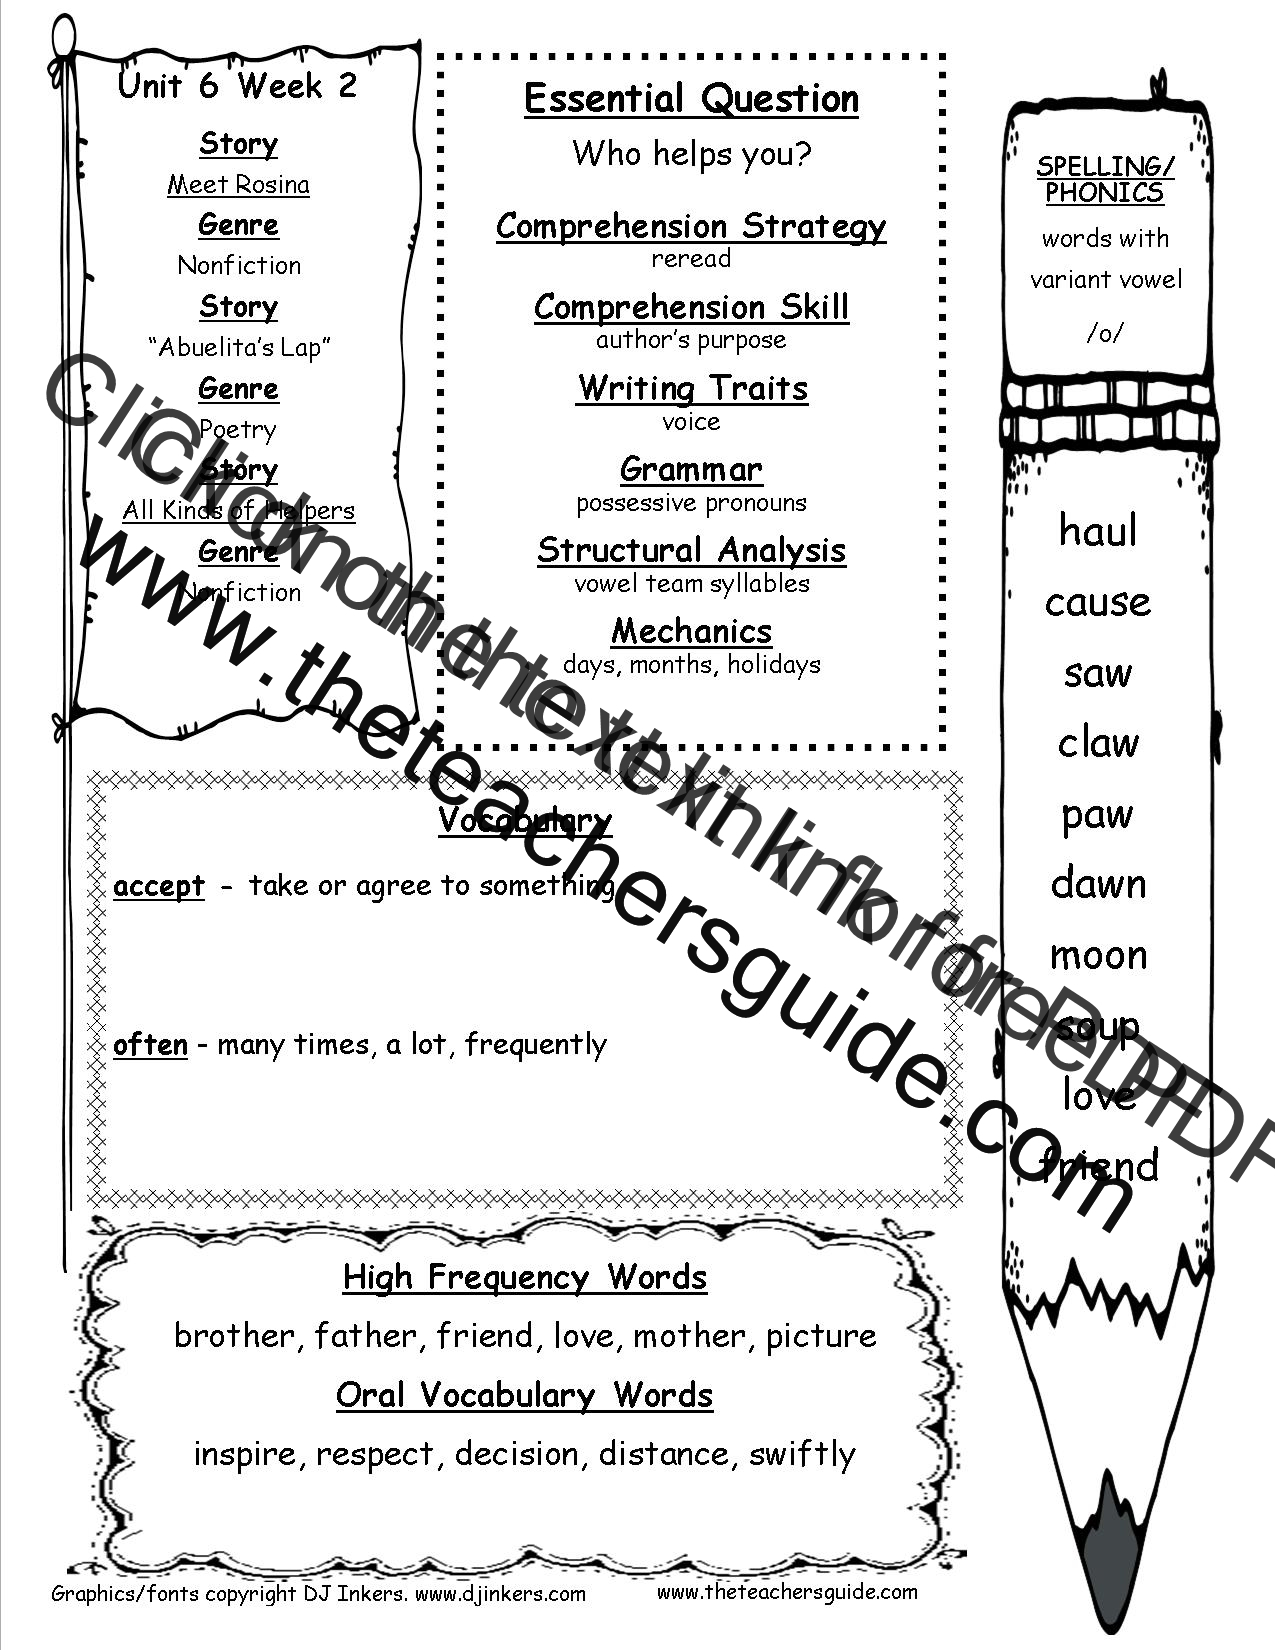 worksheet First Grade Vocabulary Worksheets worksheet vocabulary words for 1st grade mikyu free mcgraw hill wonders first resources and printouts spelling vocabulary